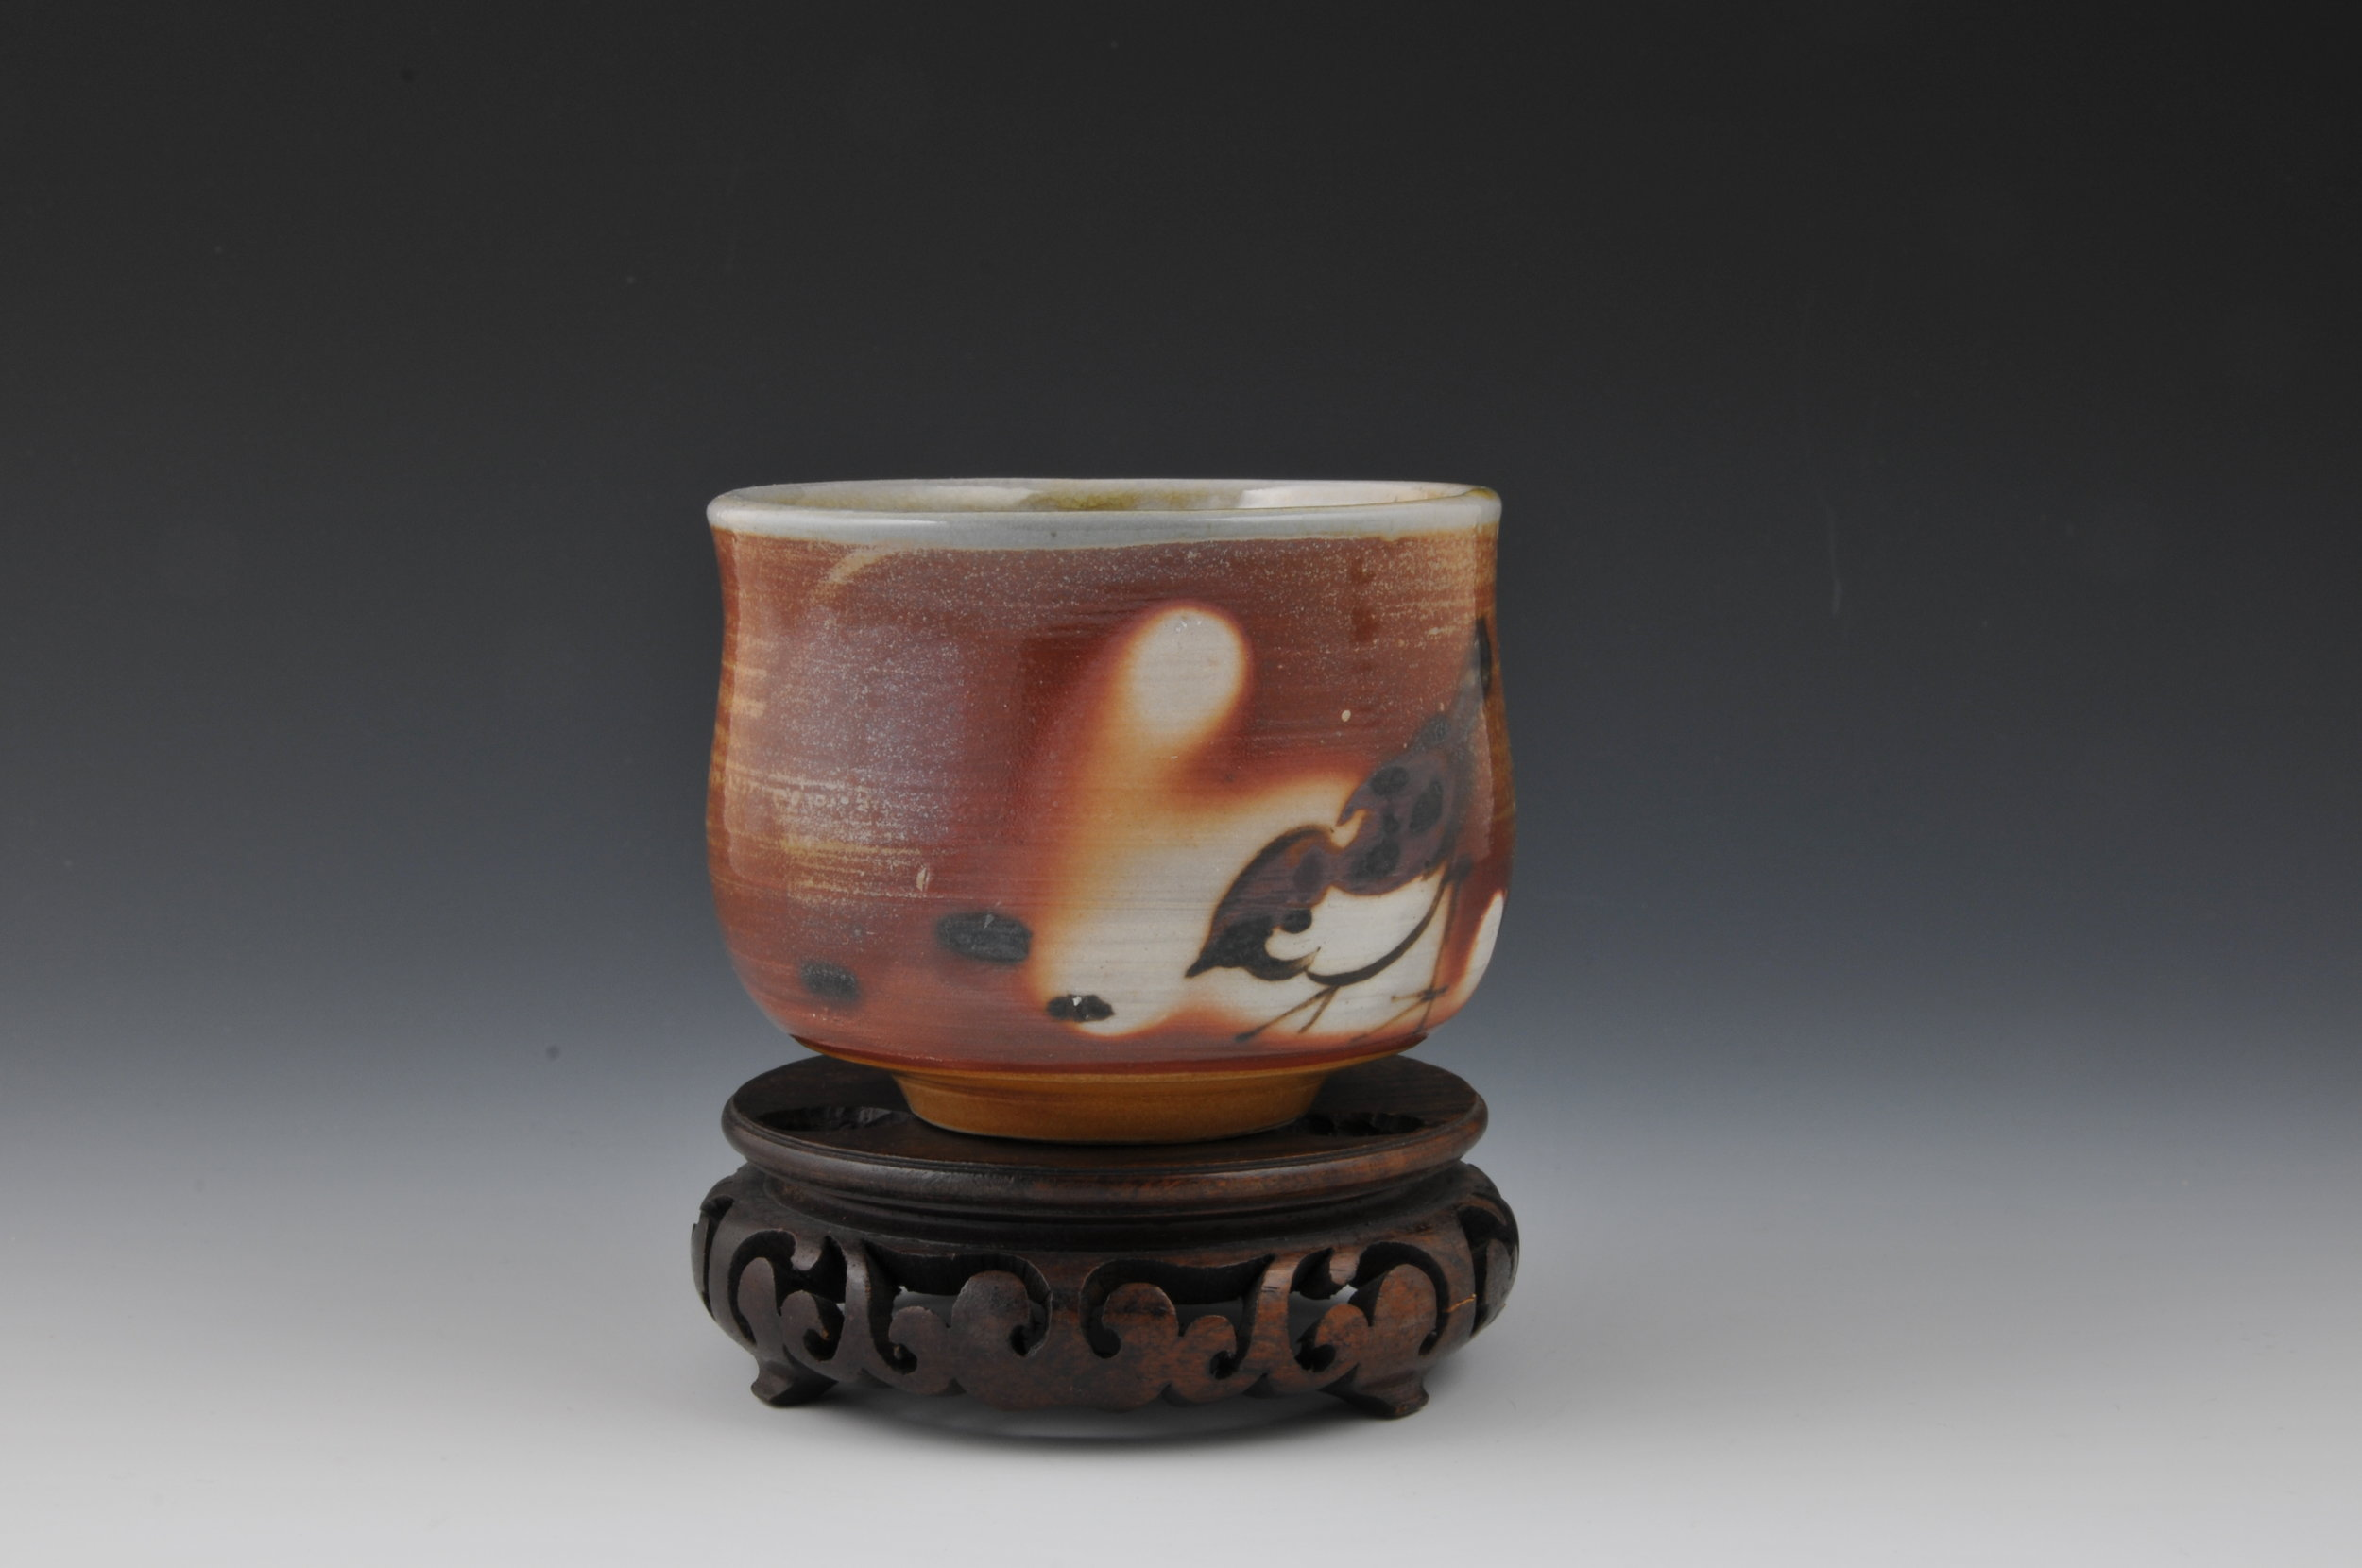 FRASER VALLEY POTTERS GUILD   ESTABLISHED IN 1975, MEMBERSHIP IS OPEN TO AND ENCOURAGED FOR ALL LEVELS OF POTTERS INCLUDING HOBBYISTS, STUDENTS, PROFESSIONAL POTTERS, AND CERAMICS INSTRUCTORS.   VIEW OUR WORK